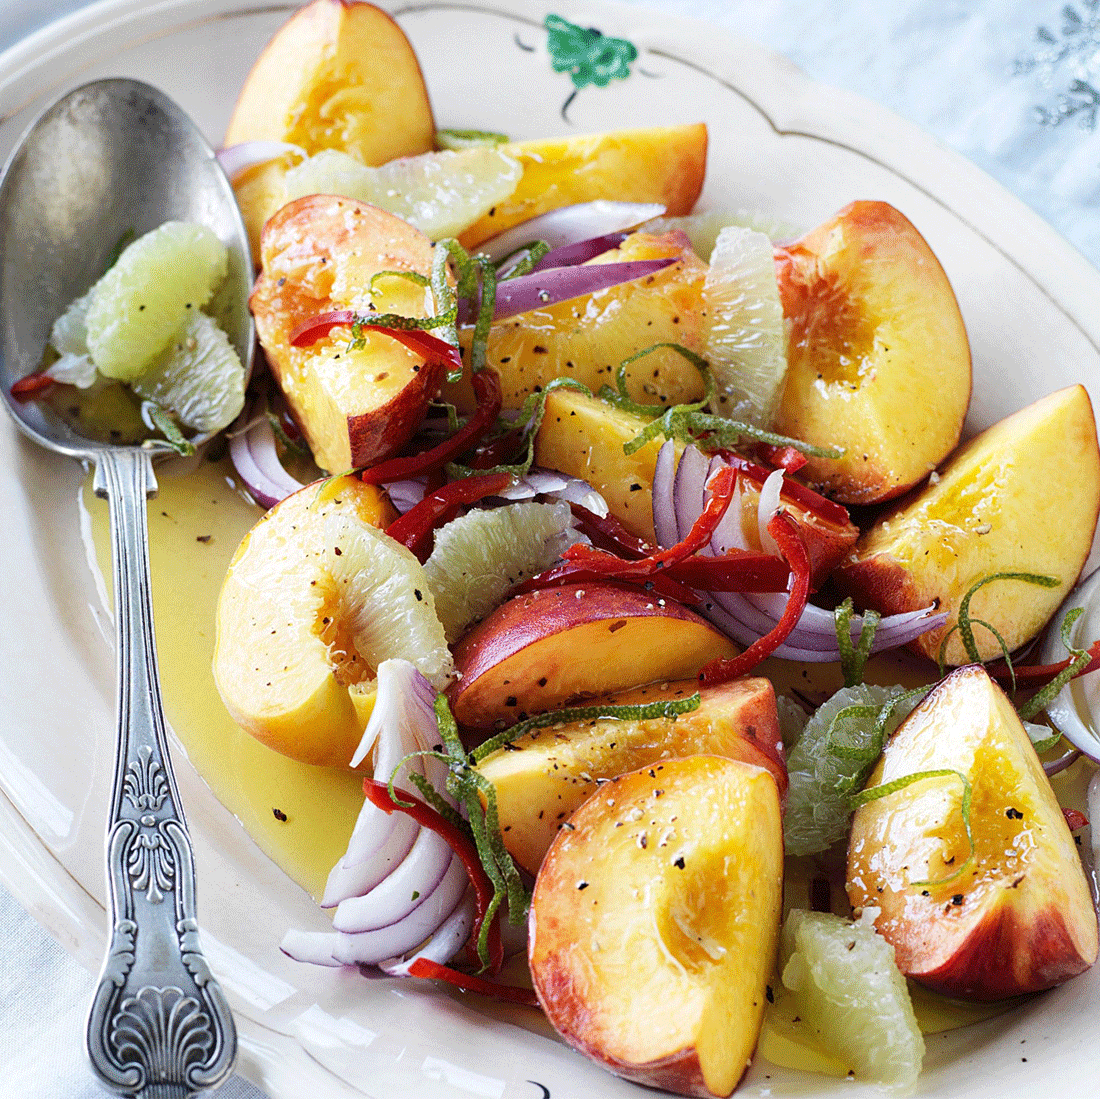 Peach, Lime & Chili Salad with fresh Dressing & Al Rabie Apple juice